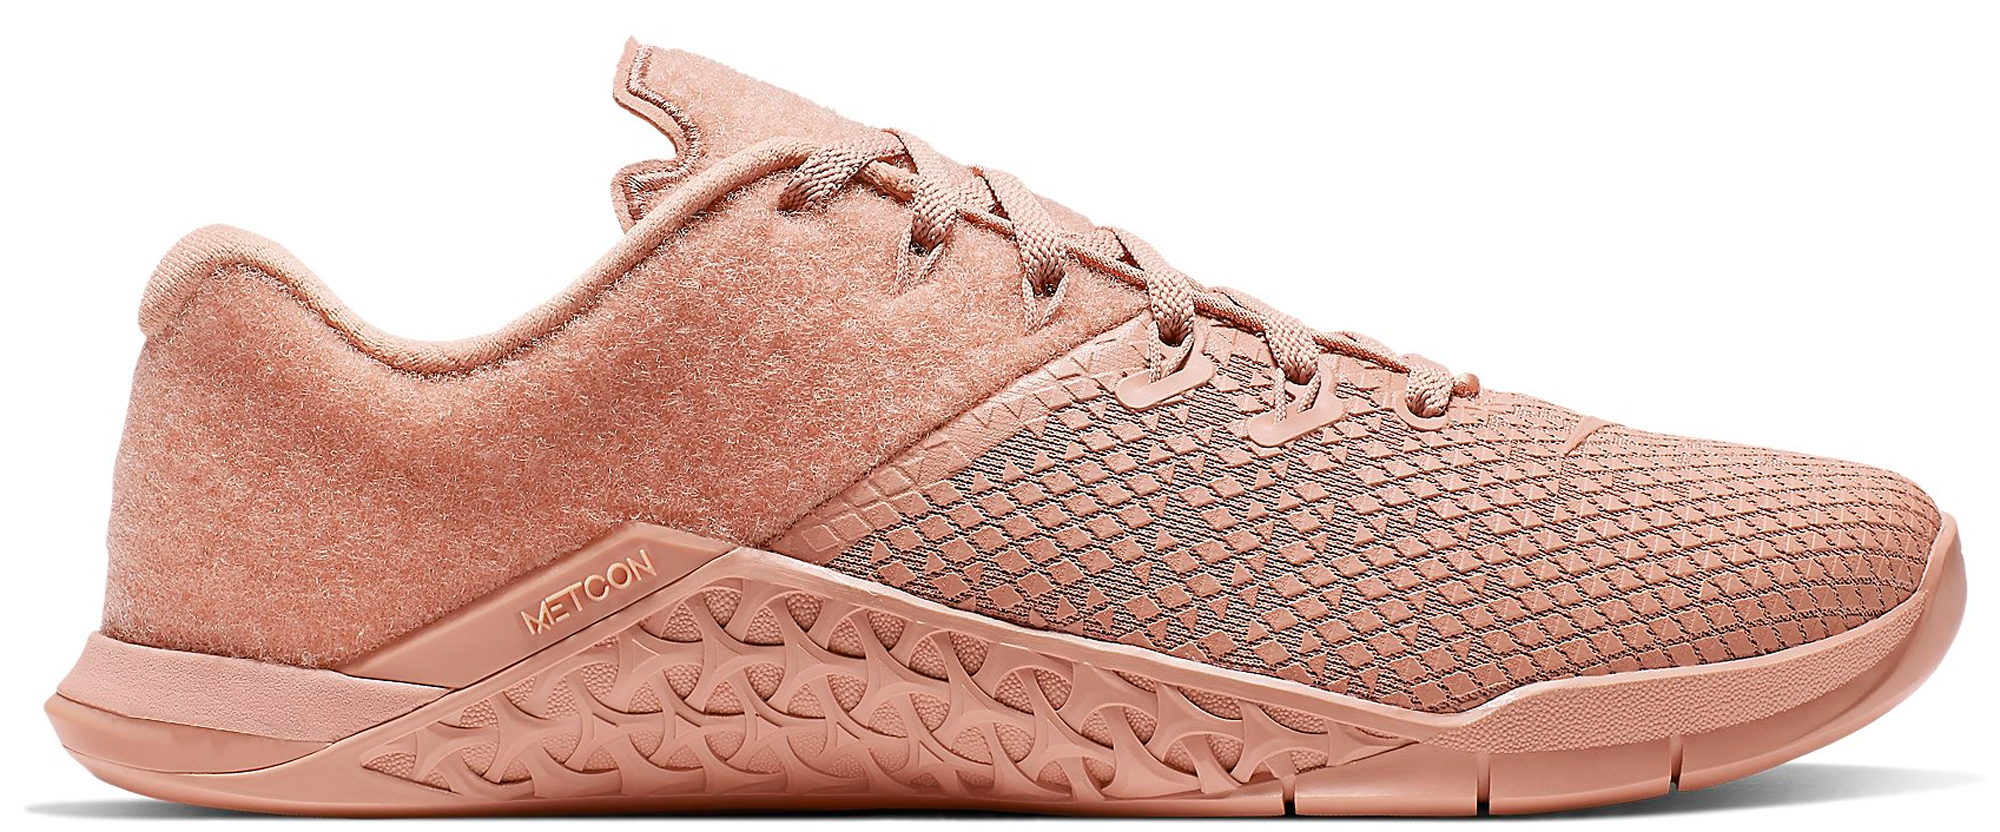 Nike Metcon 4 Patches Rose Gold (W